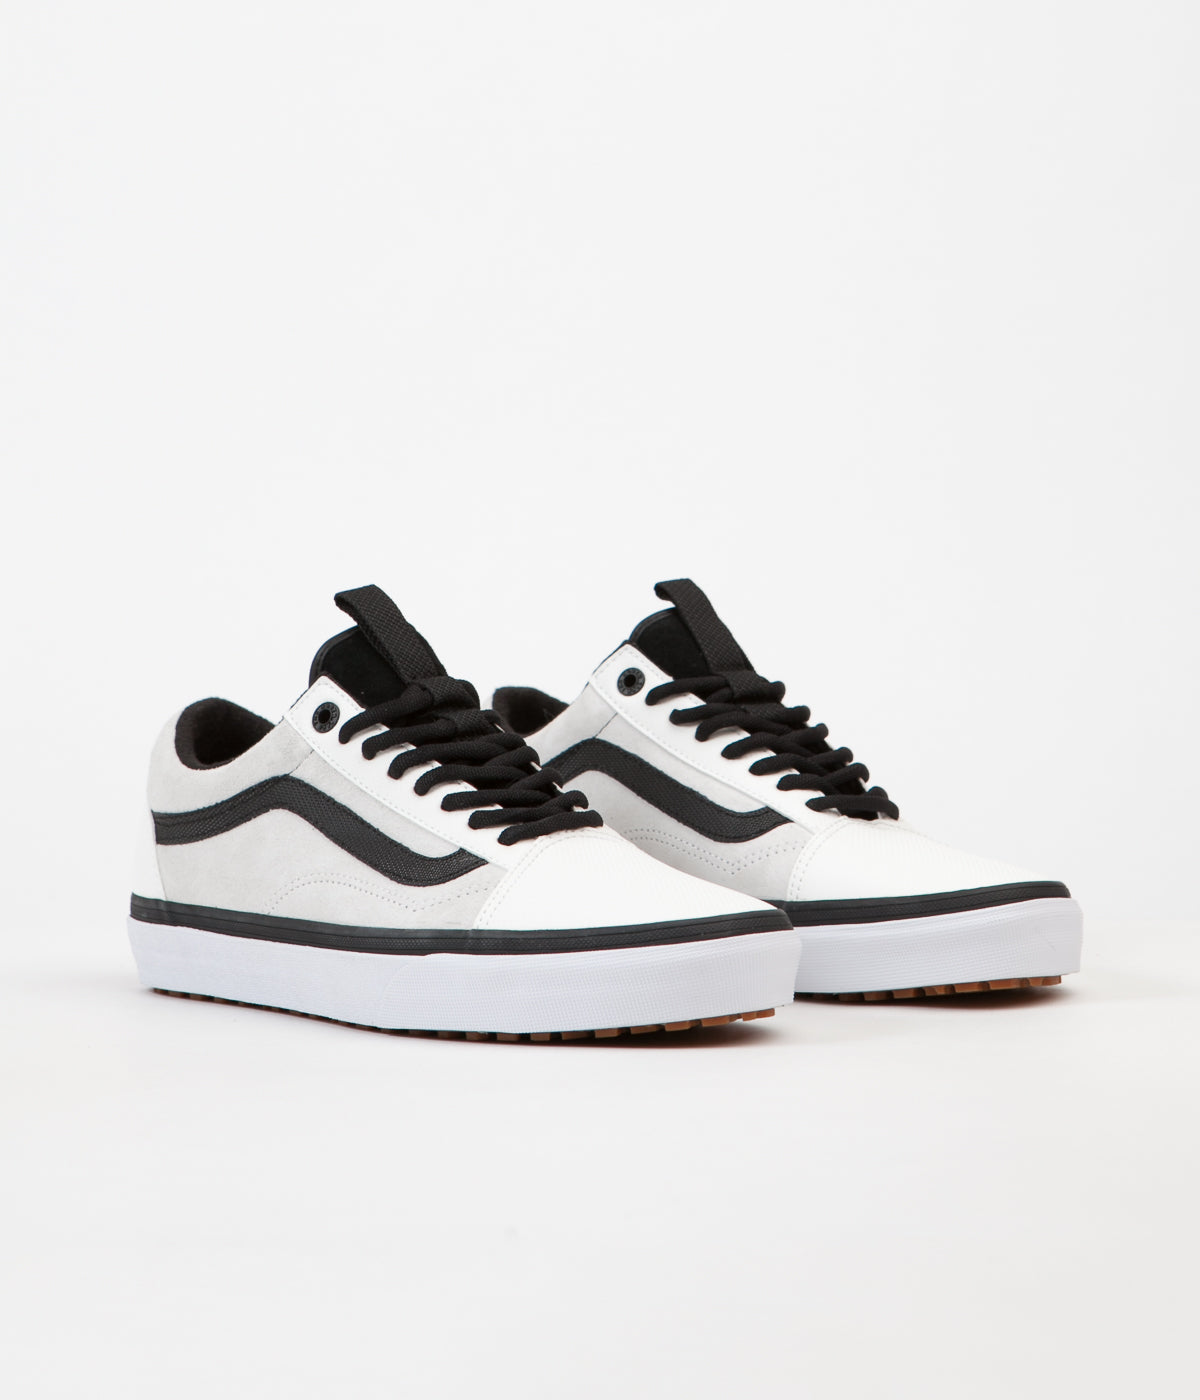 4385e45f58d052 ... Vans X The North Face Old Skool MTE DX Shoes - True White   Black ...